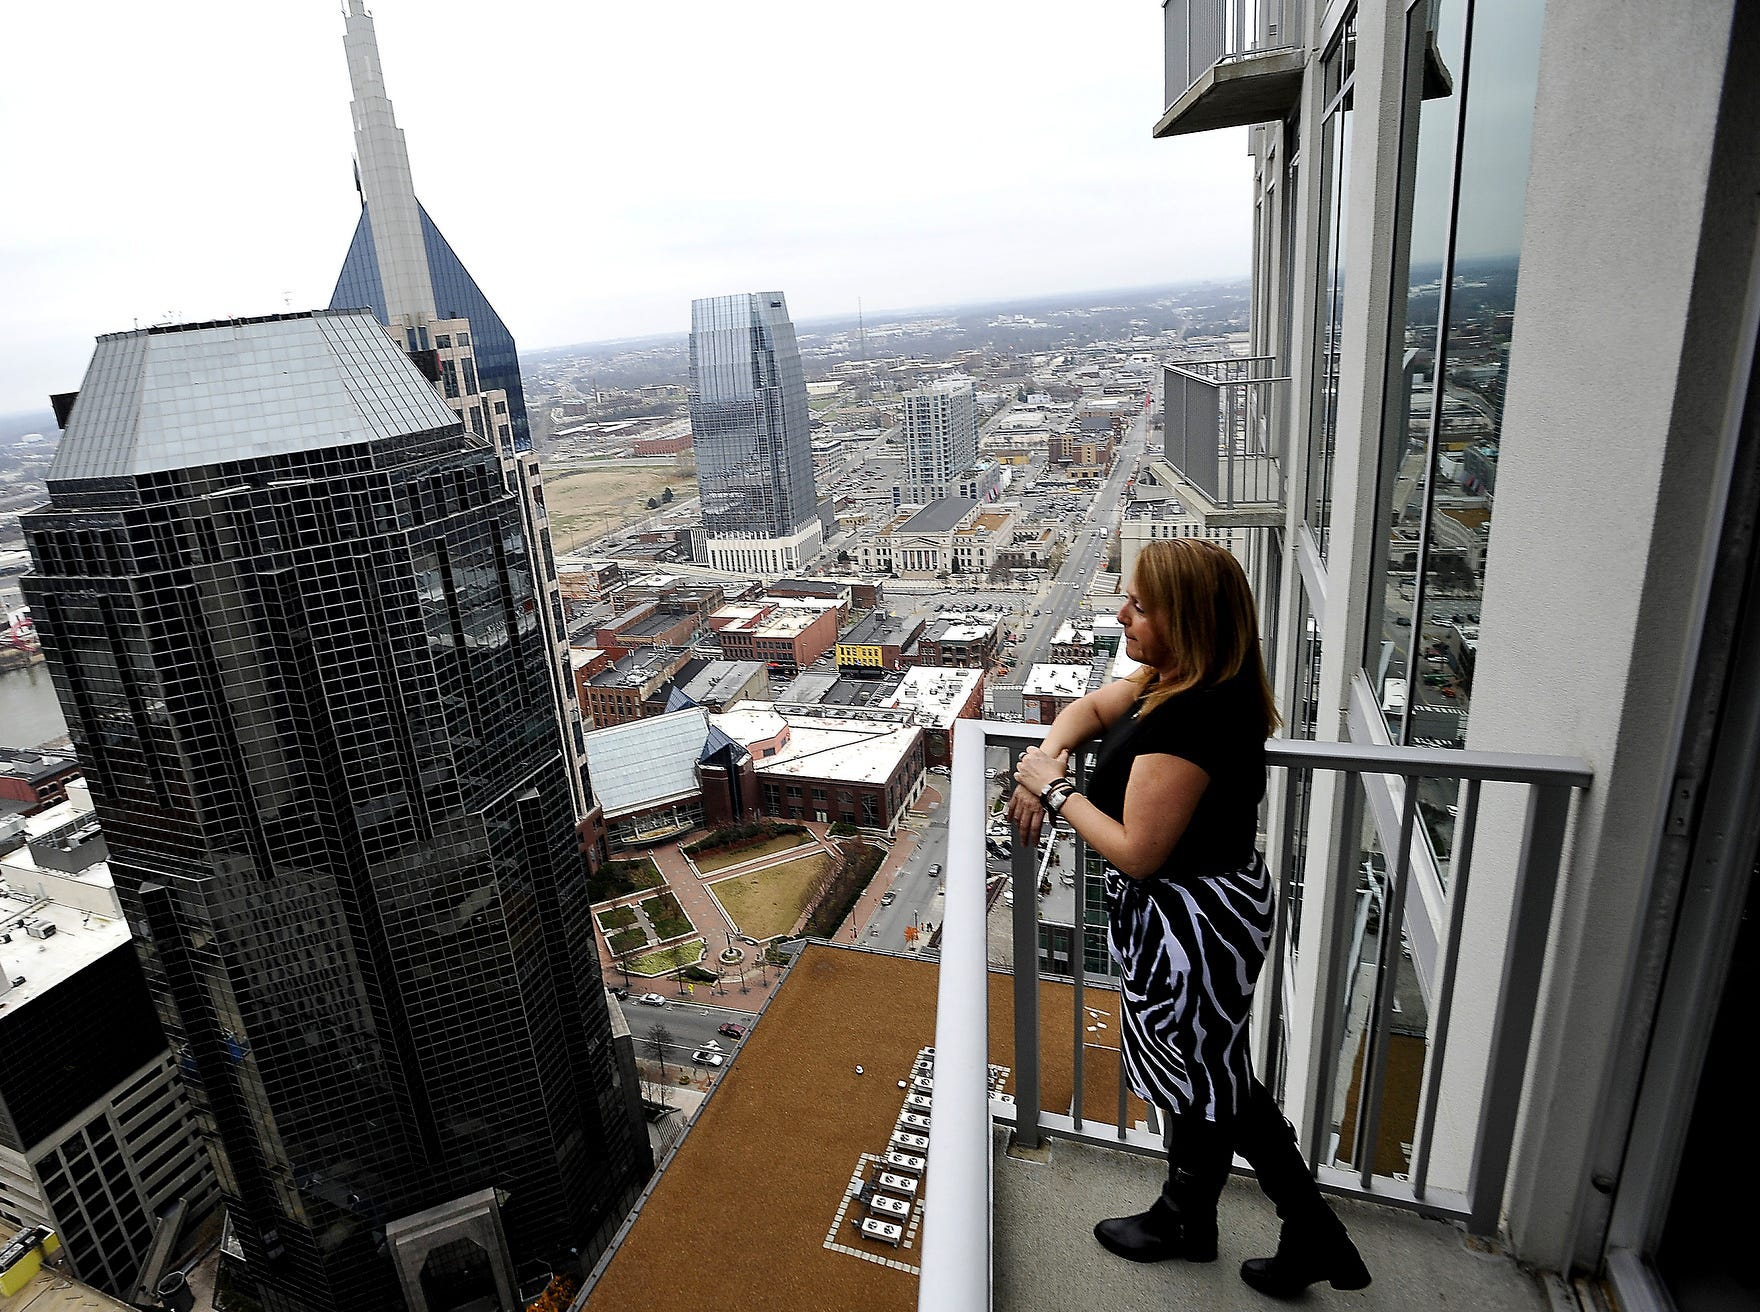 Laurie Sheinkopf, who used to live in a large house in Franklin, is enjoying the view of downtown Nashville from her condo in the Viridian building Dec. 23, 2011.